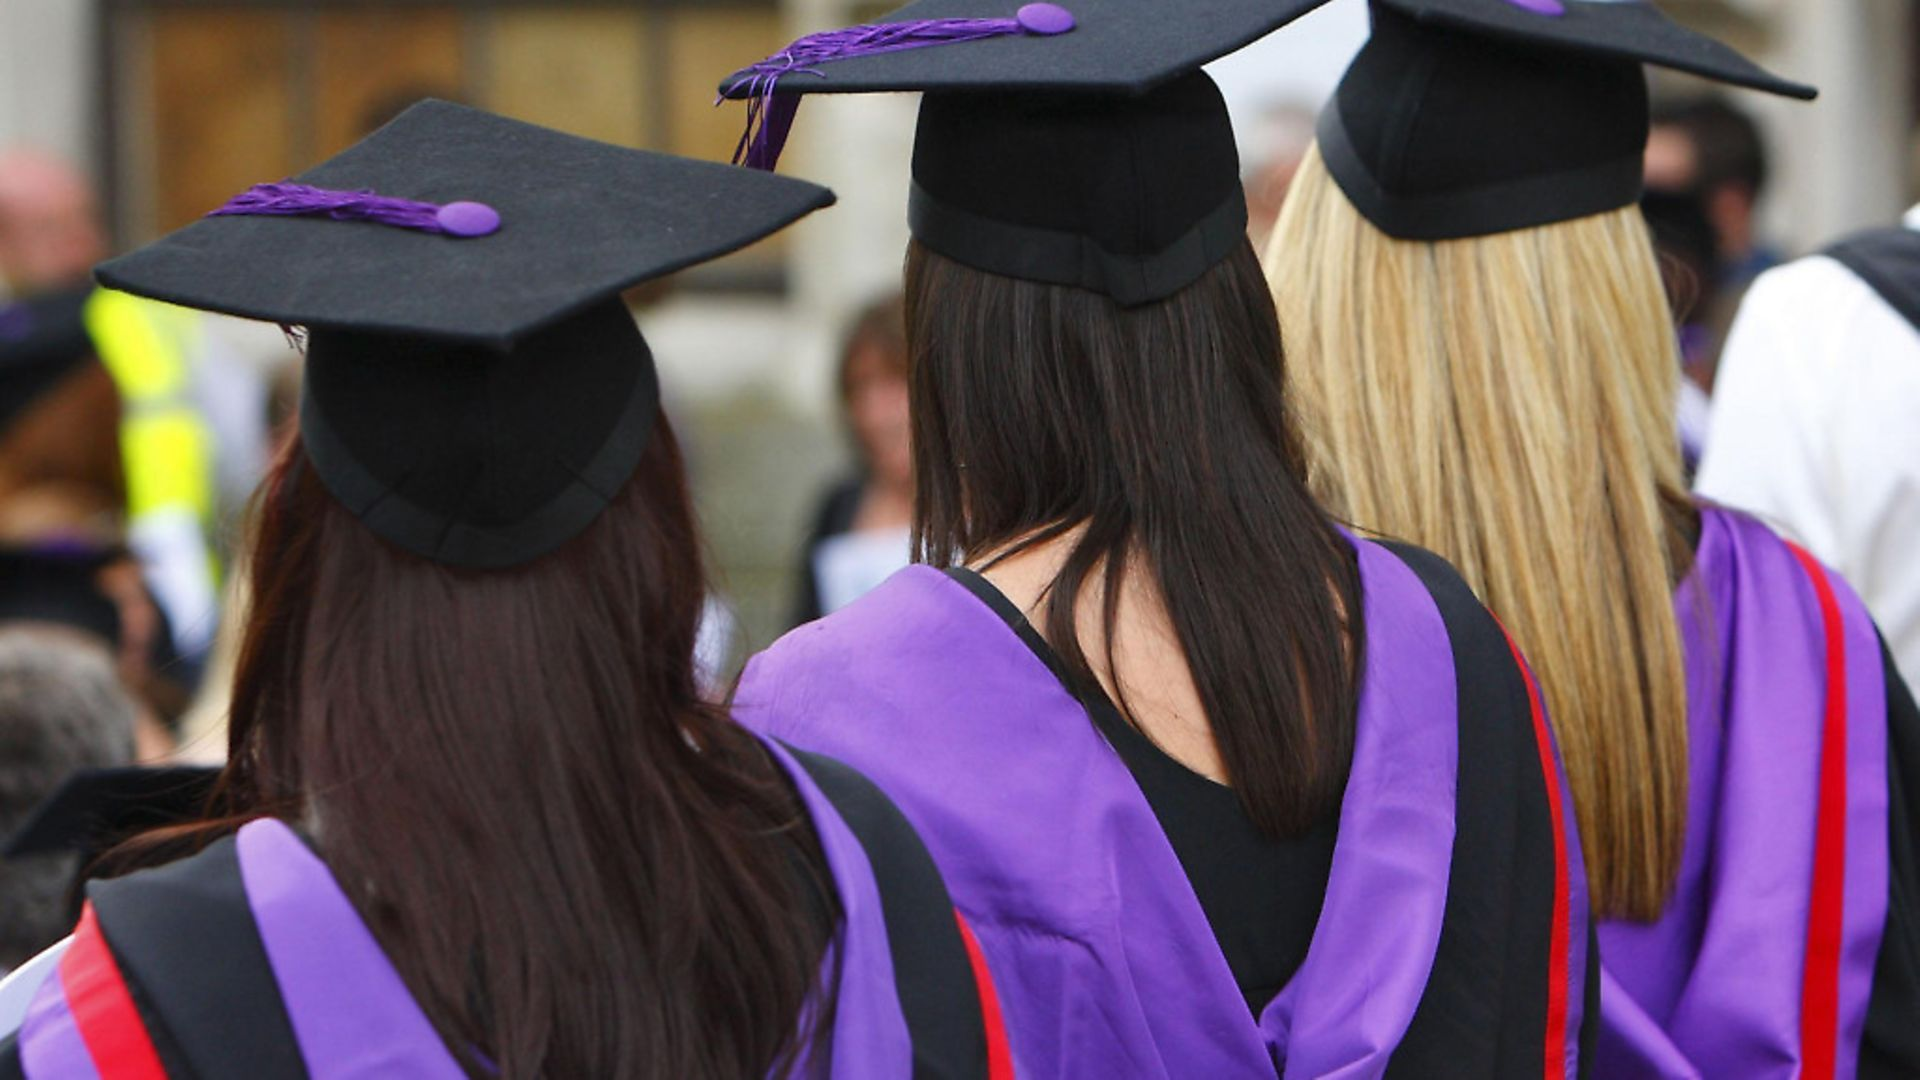 According to Universities UK, thousands of students could lose out on funding to study abroad if the UK opts for a no-deal Brexit. Photograph: Chris Ison/PA Wire - Credit: PA